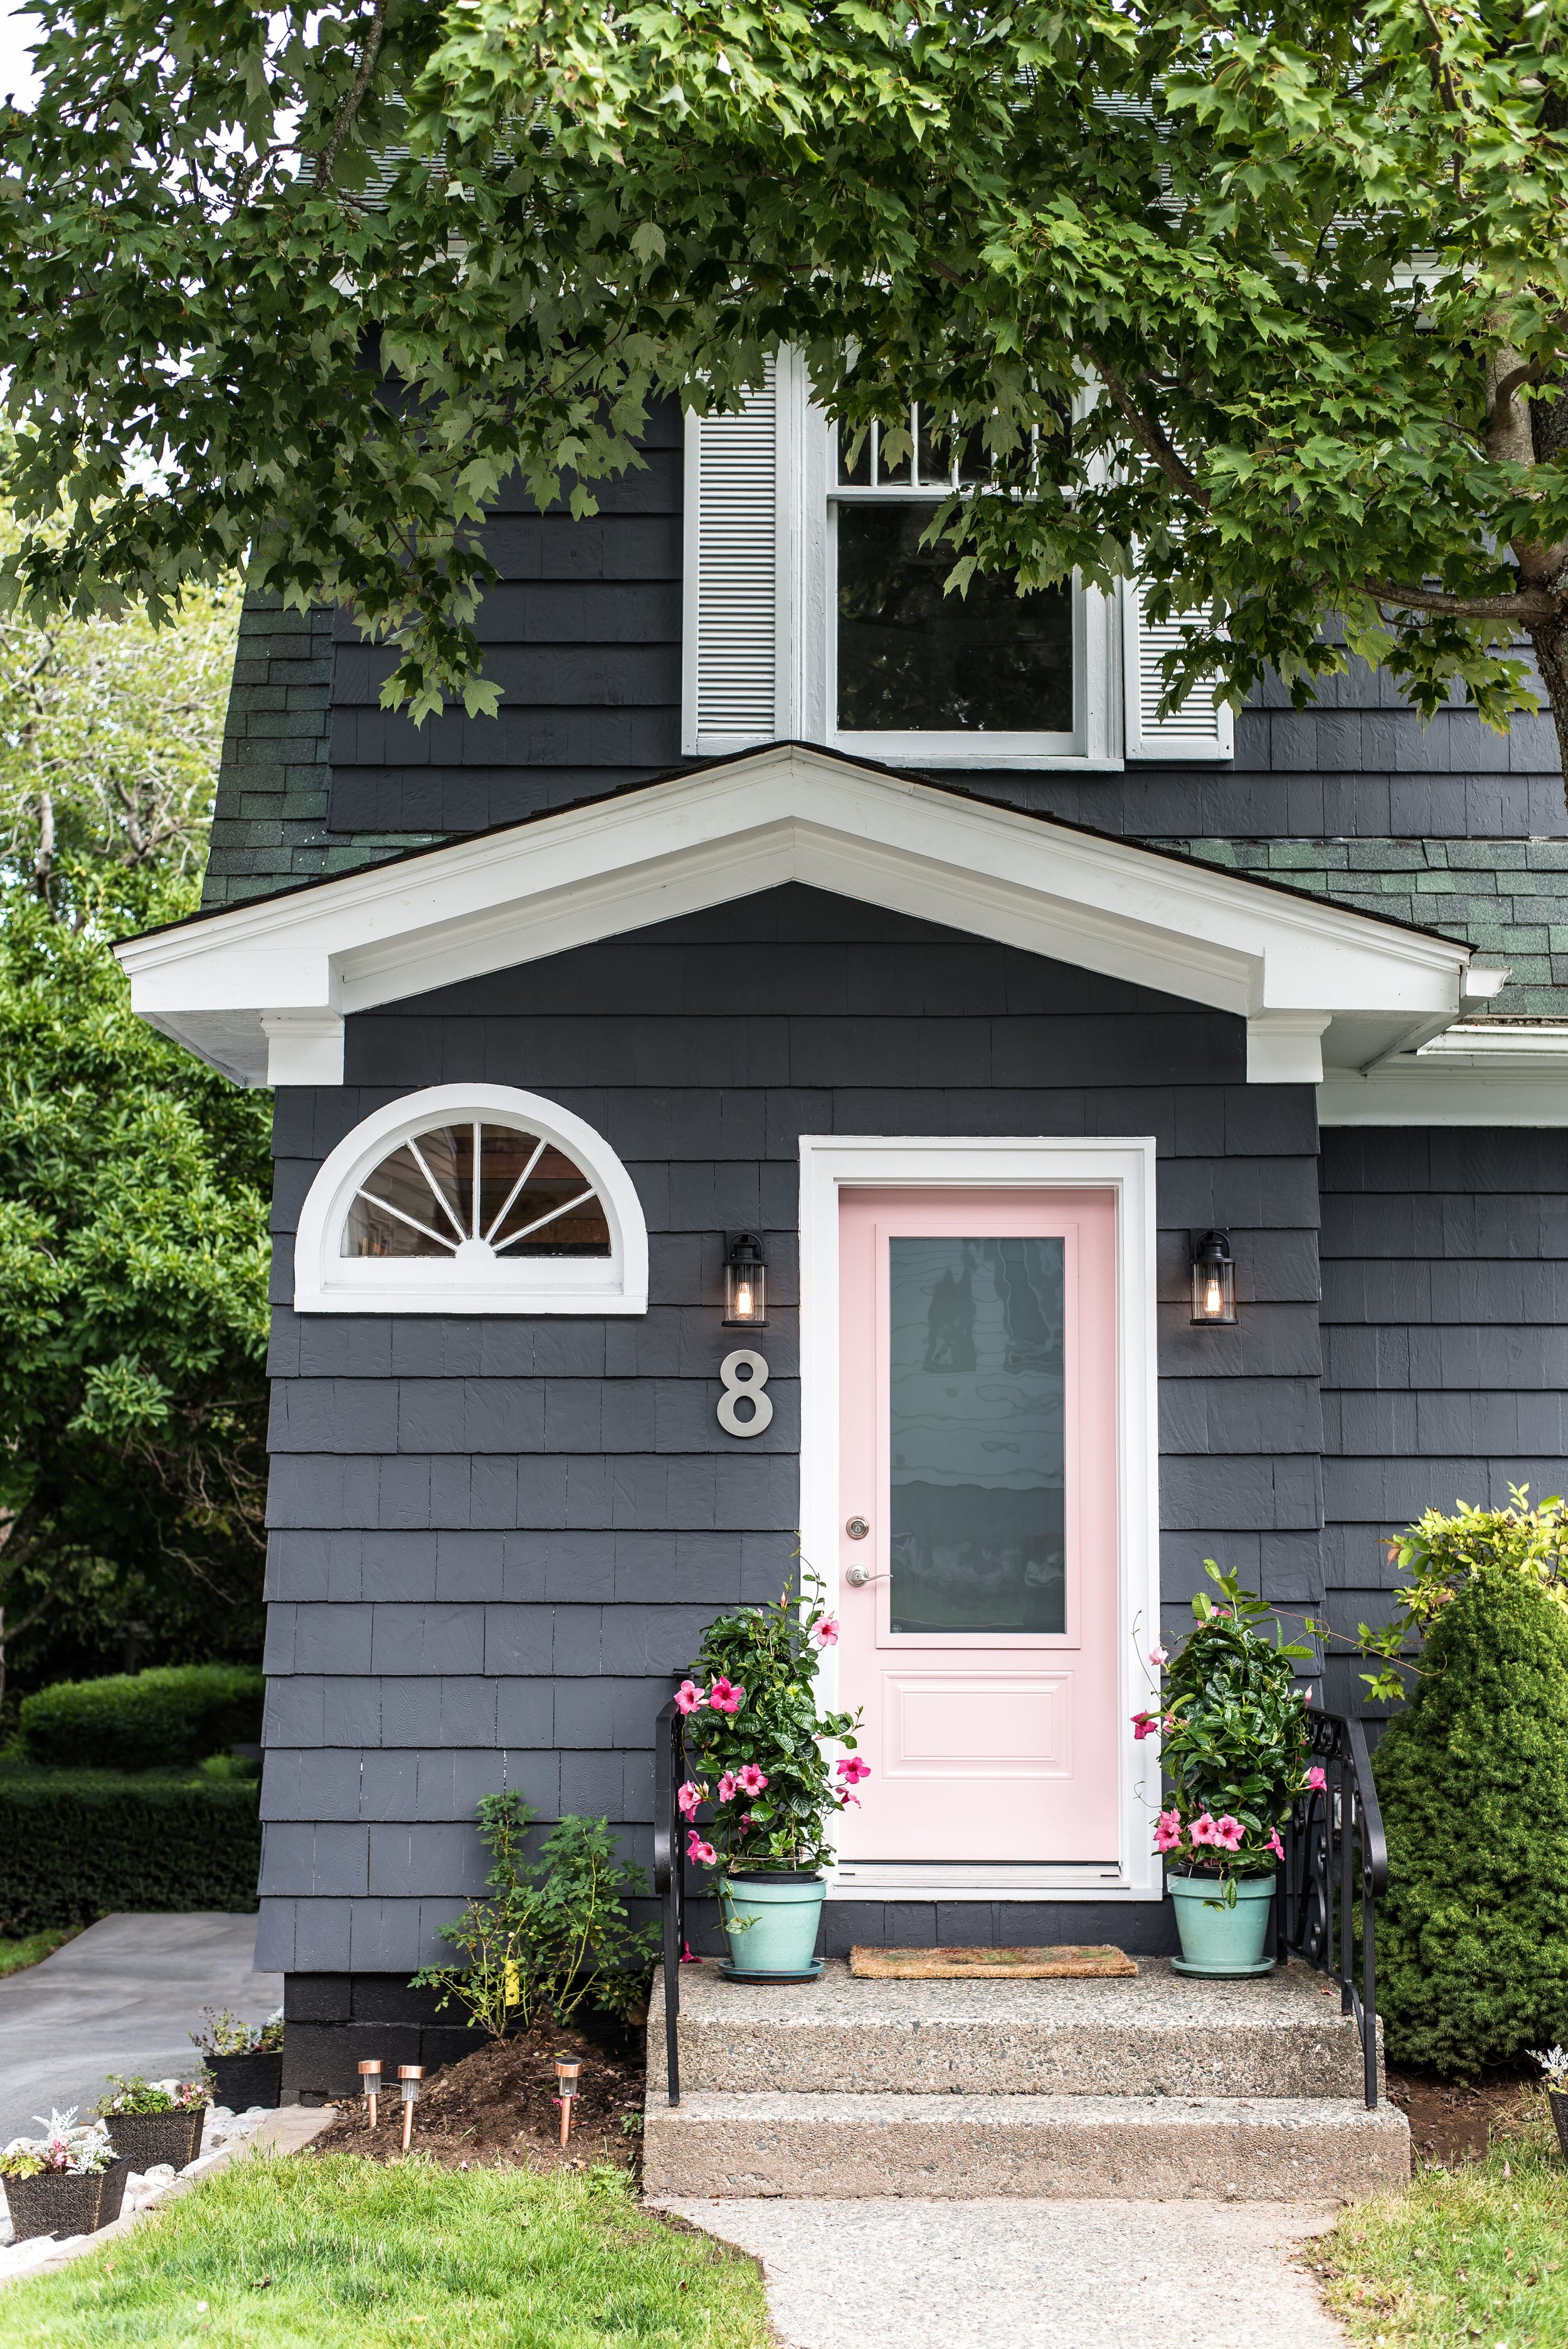 Buying An Old Home - & Improving Efficiency.